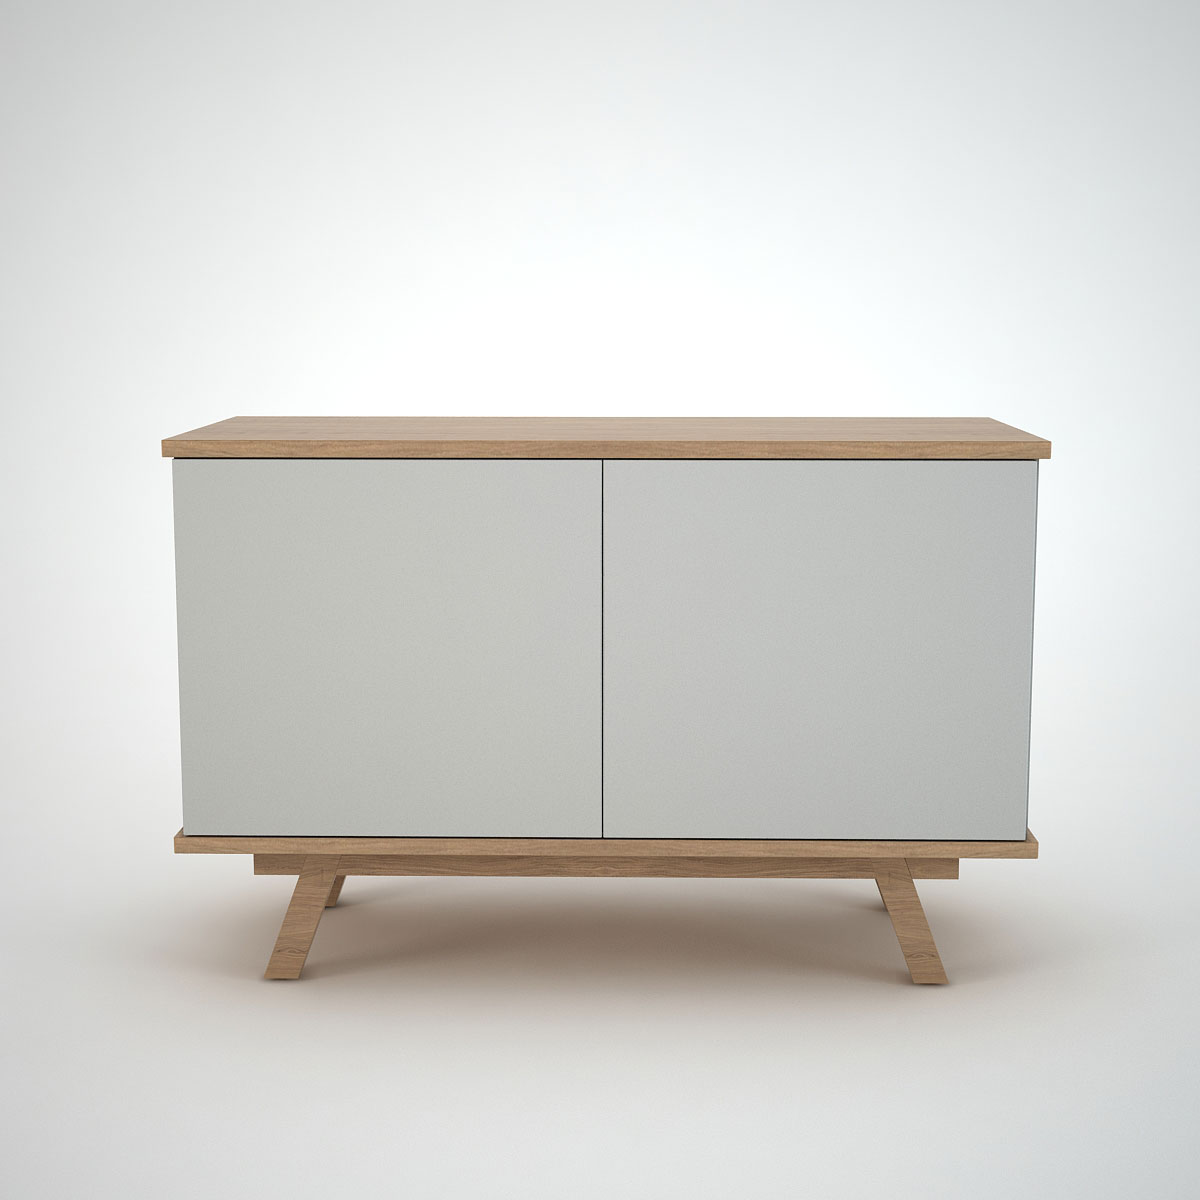 Comtemporary Sideboard clay Ottawa Oak